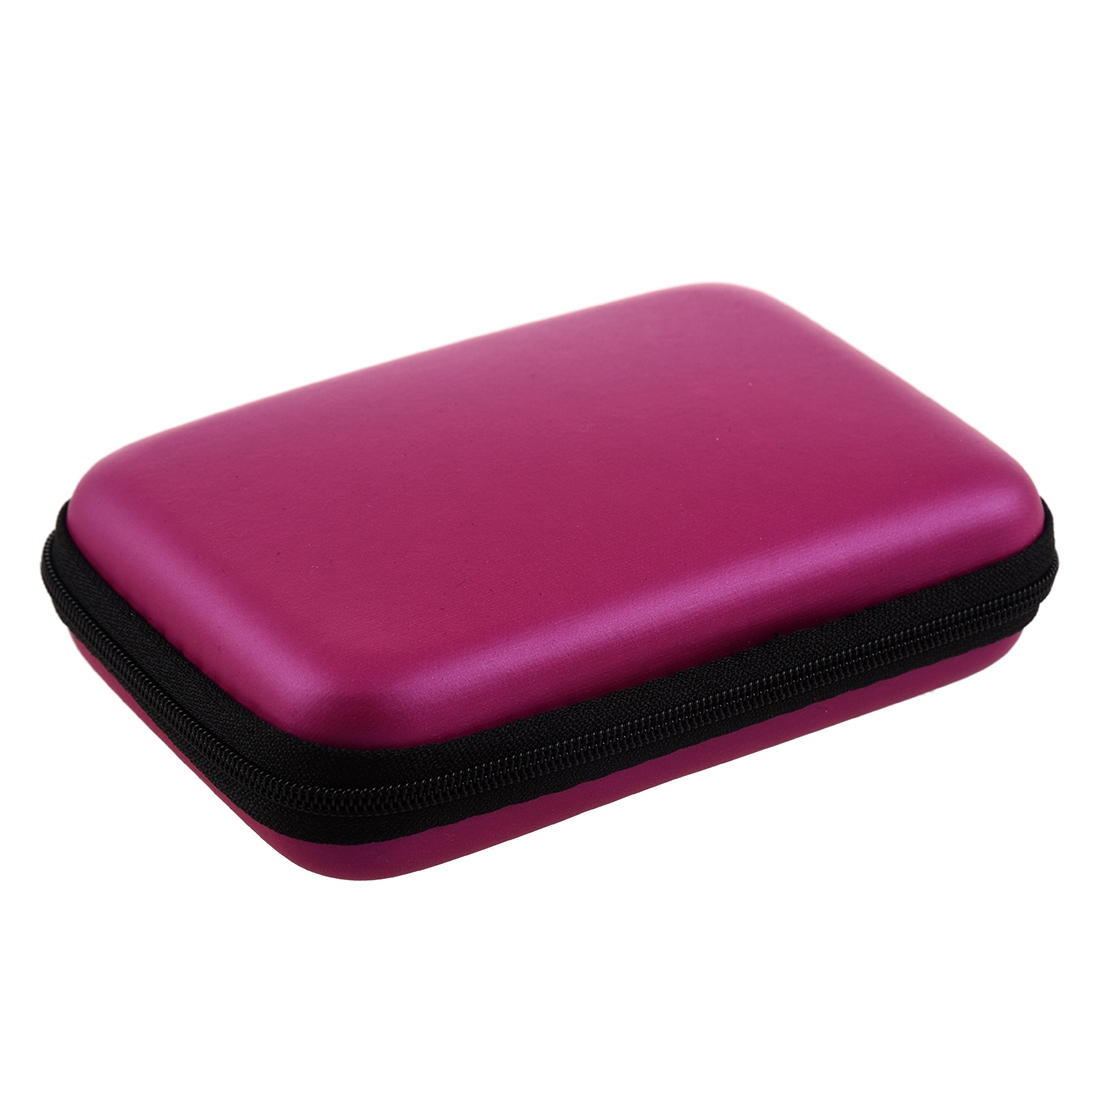 Portable Hard Disk Drive Shockproof Zipper Cover Bag Case 2.5 HDD Bag rose Red